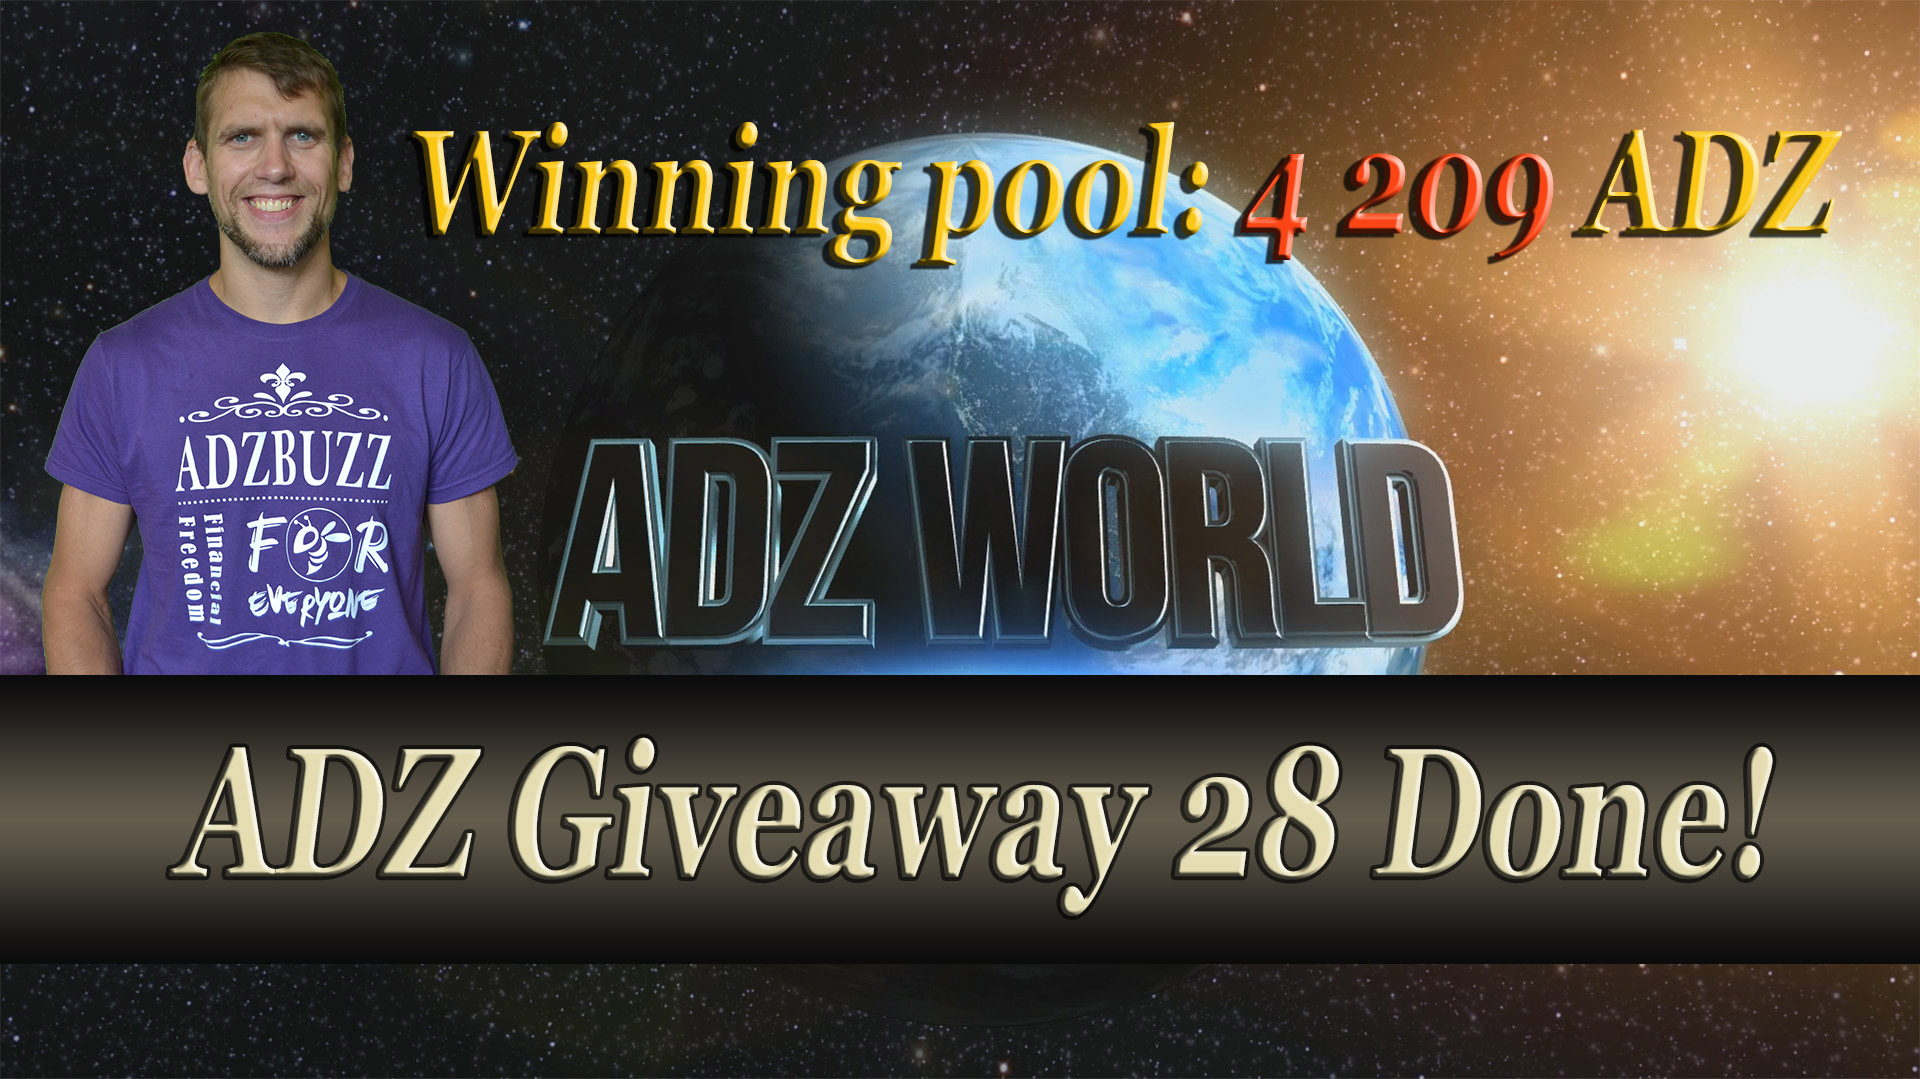 ADZ Giveaway 28 Done! Winning pool 4209 ADZ